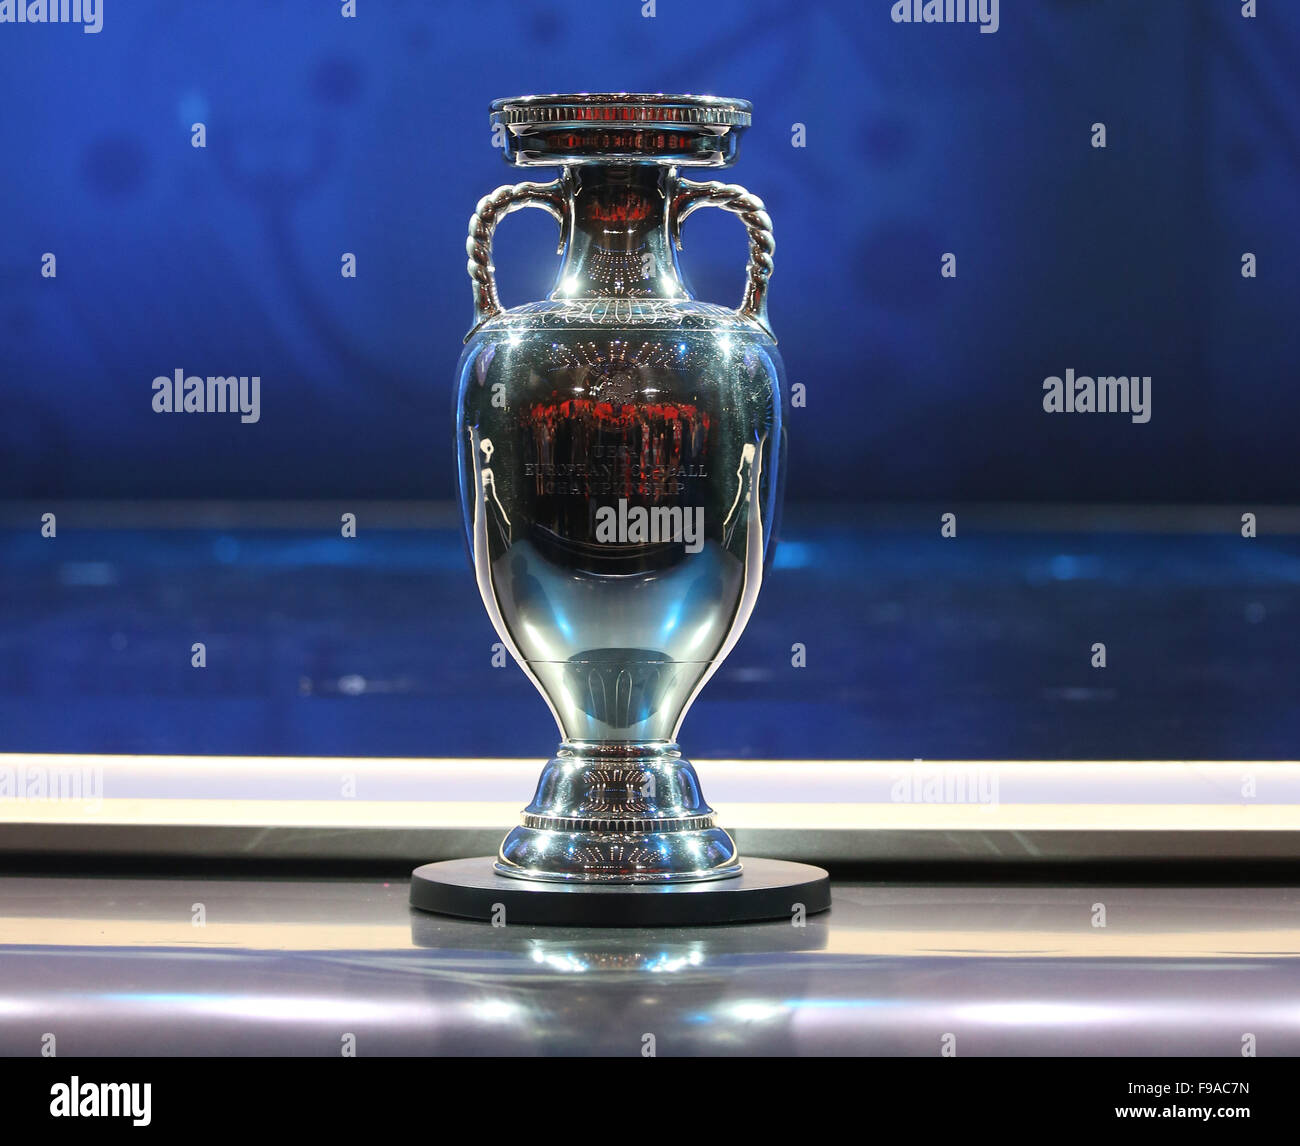 The UEFA European Championship Trophy on display prior to the UEFA     The UEFA European Championship Trophy on display prior to the UEFA EURO  2016 final draw ceremony at the Palais des Congres in Paris  France